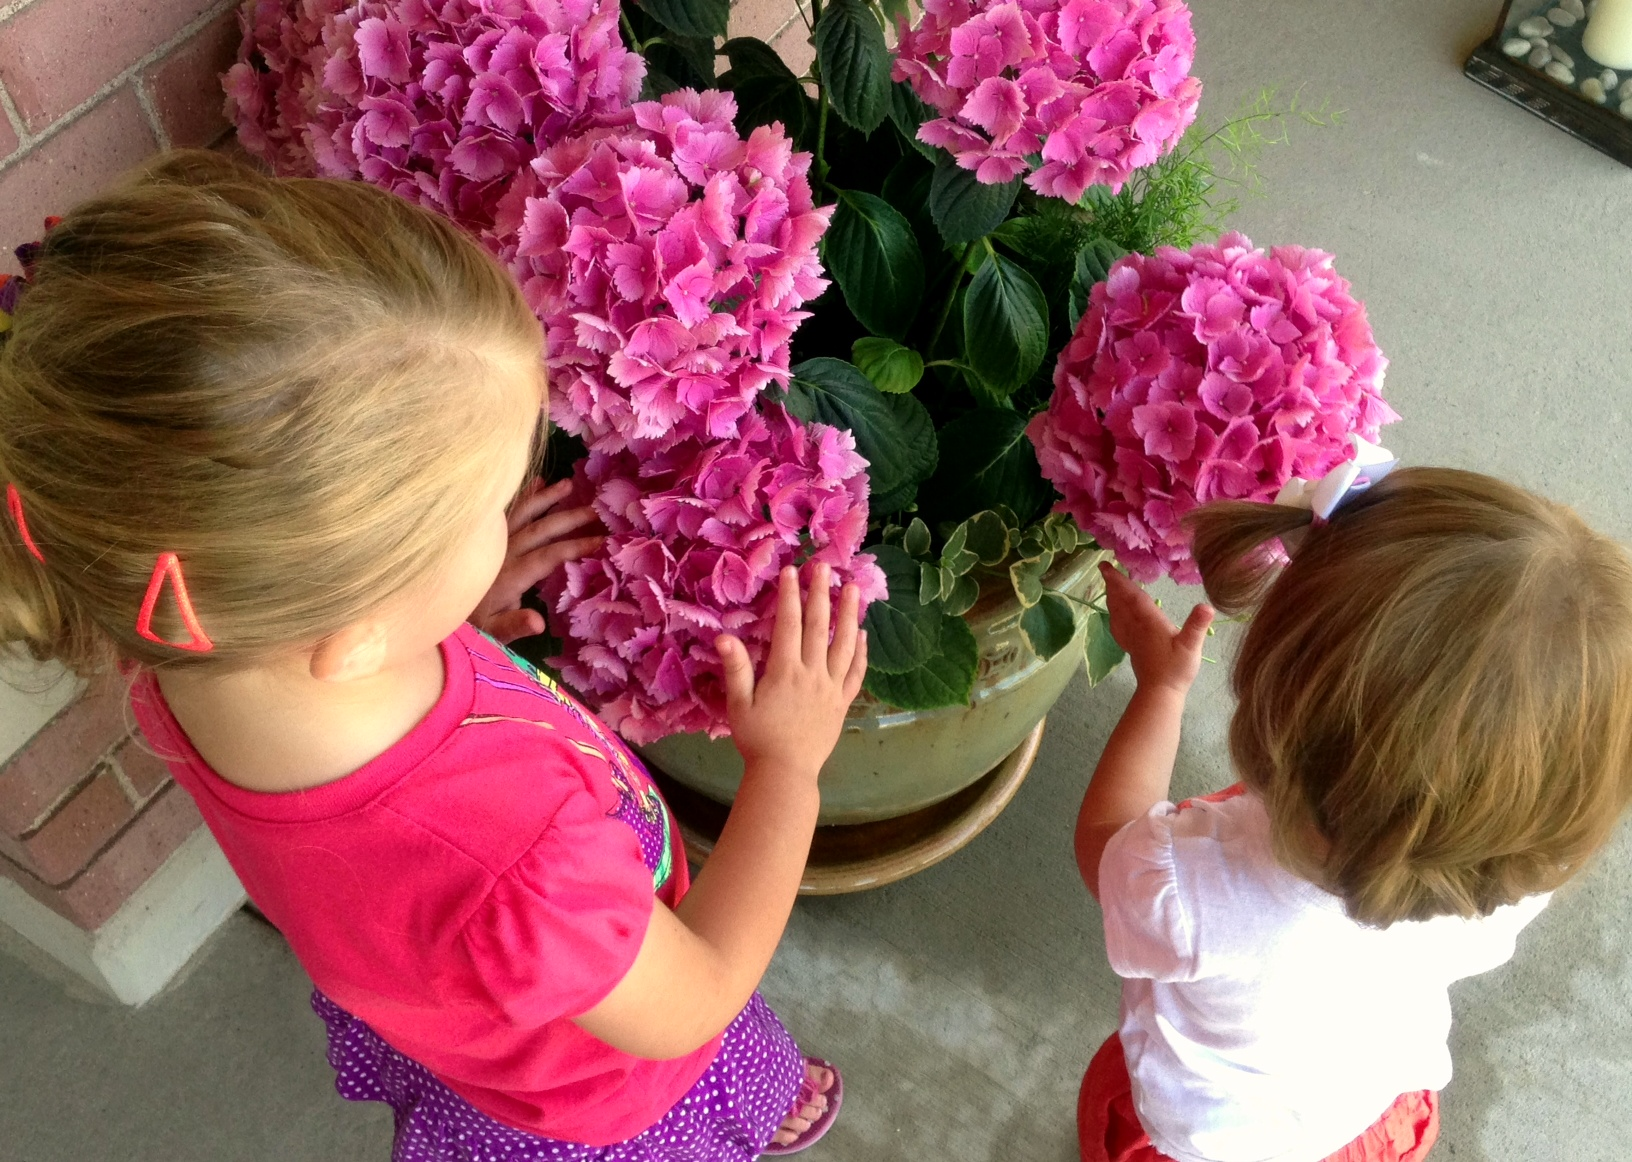 Watering Grandma's flowers!